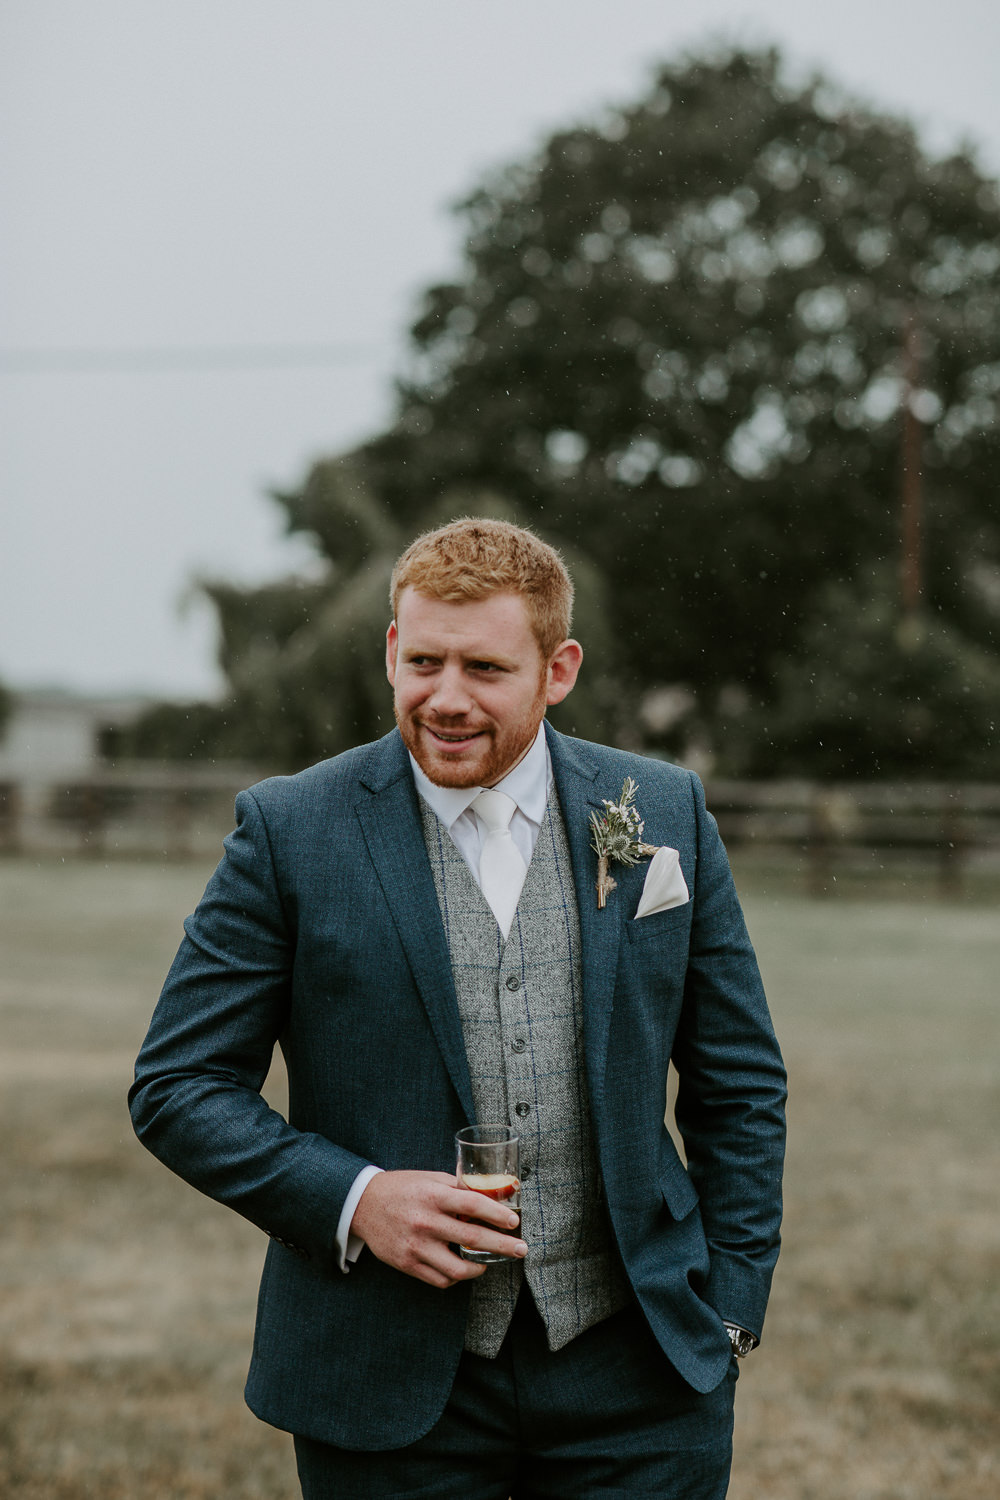 Groom Suit Navy Grey Tweed Waistcoat City Cathedral Country Marquee Wedding Siobhan Beales Photography